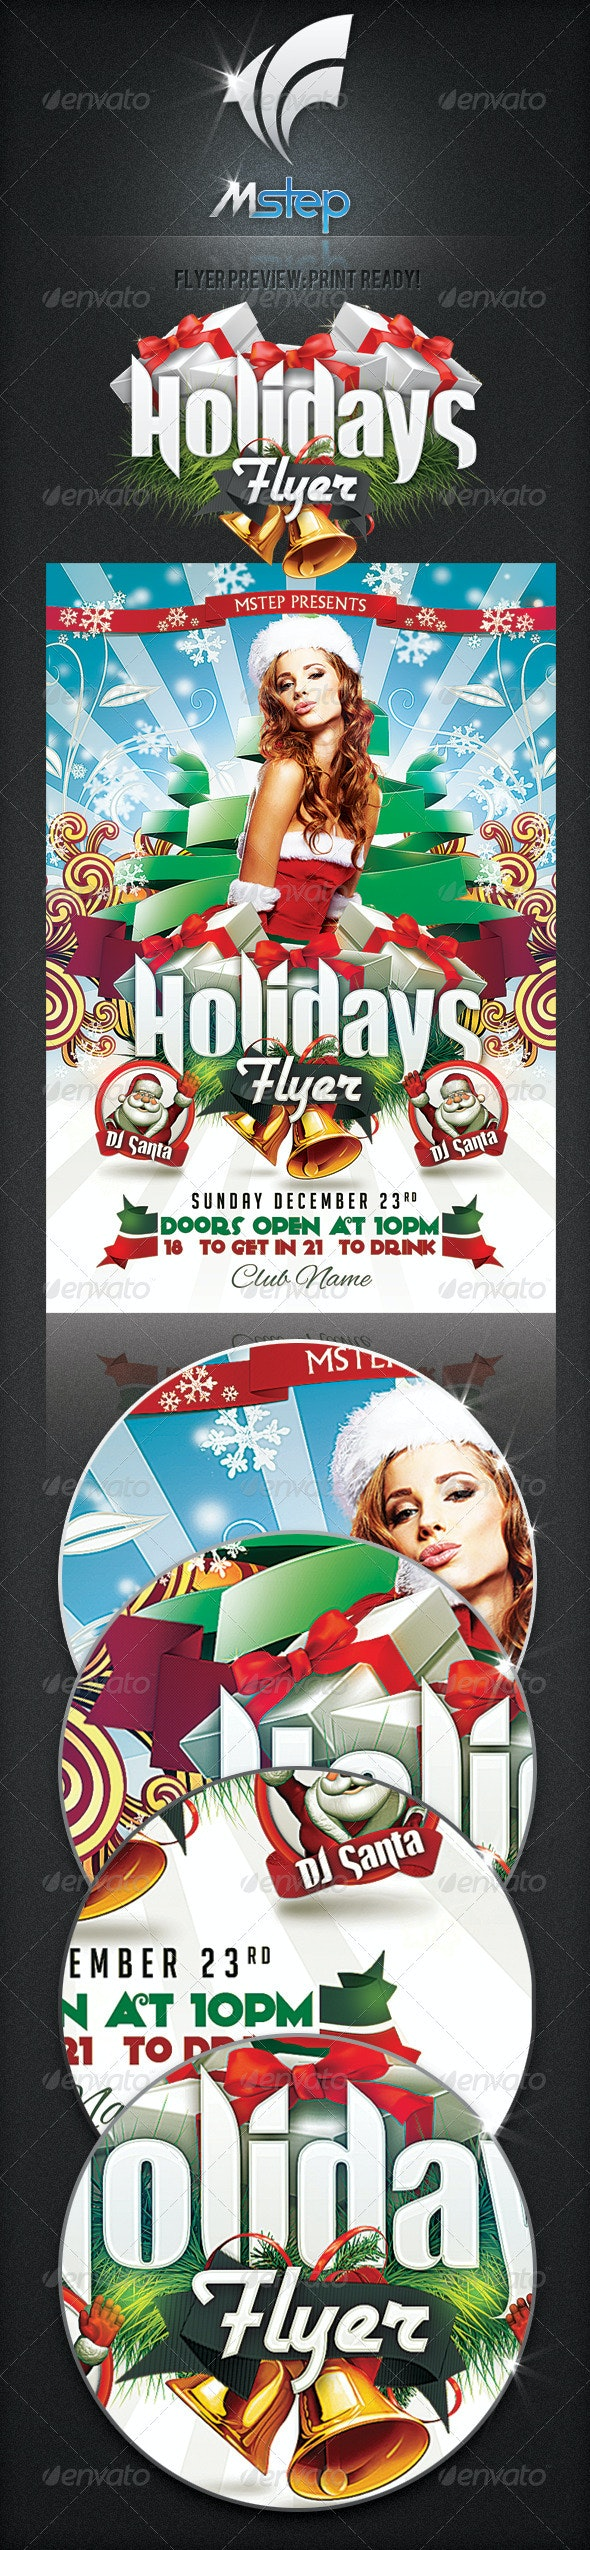 Holiday Flyer - Clubs & Parties Events